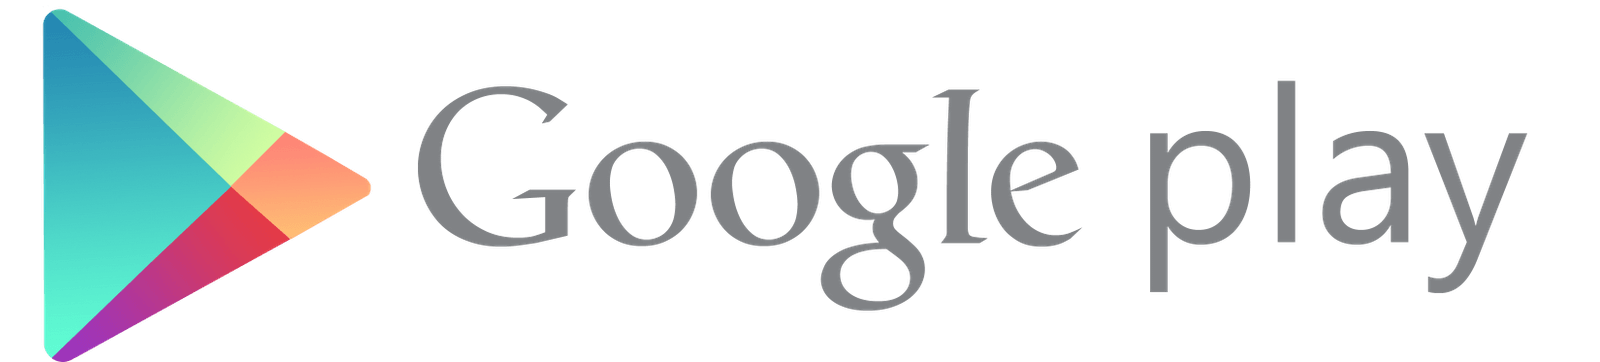 Google Play logo 3300x746 transparent DECISION OF FAITH